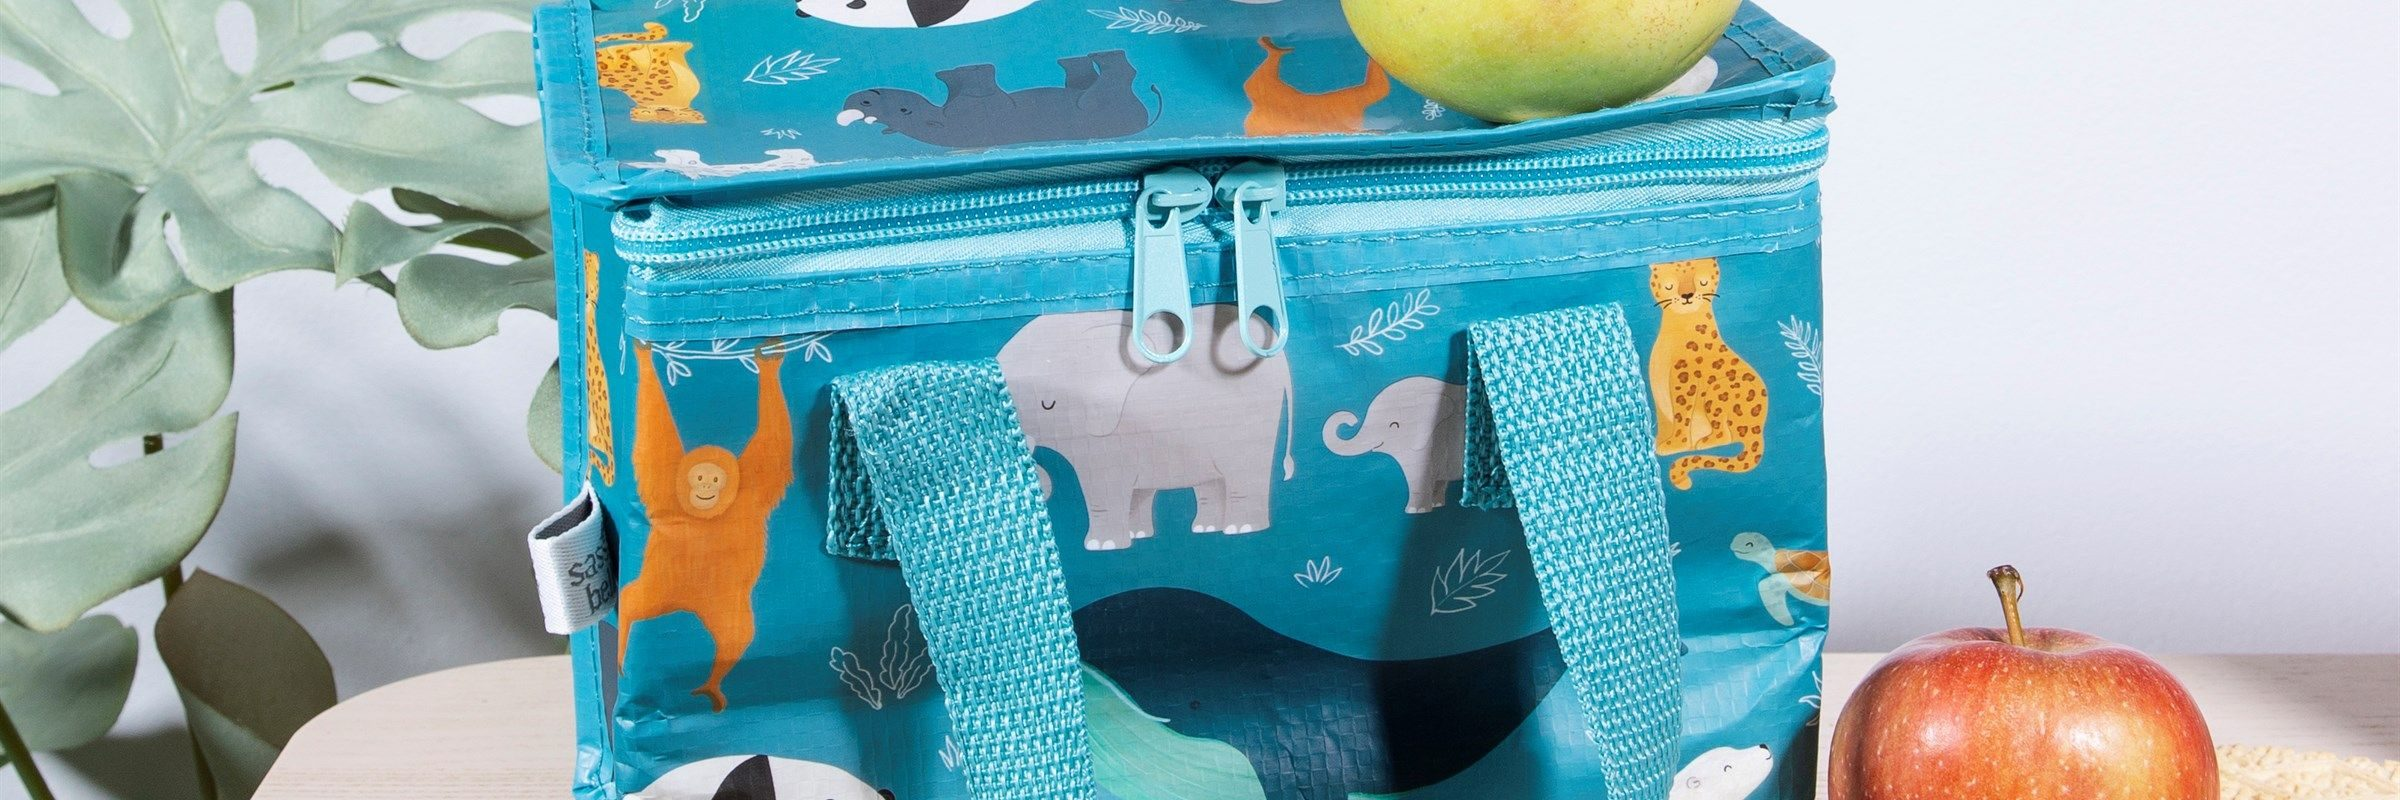 Sea animal print lunch bag available in April Road Gift shop Donegal for kids and babies